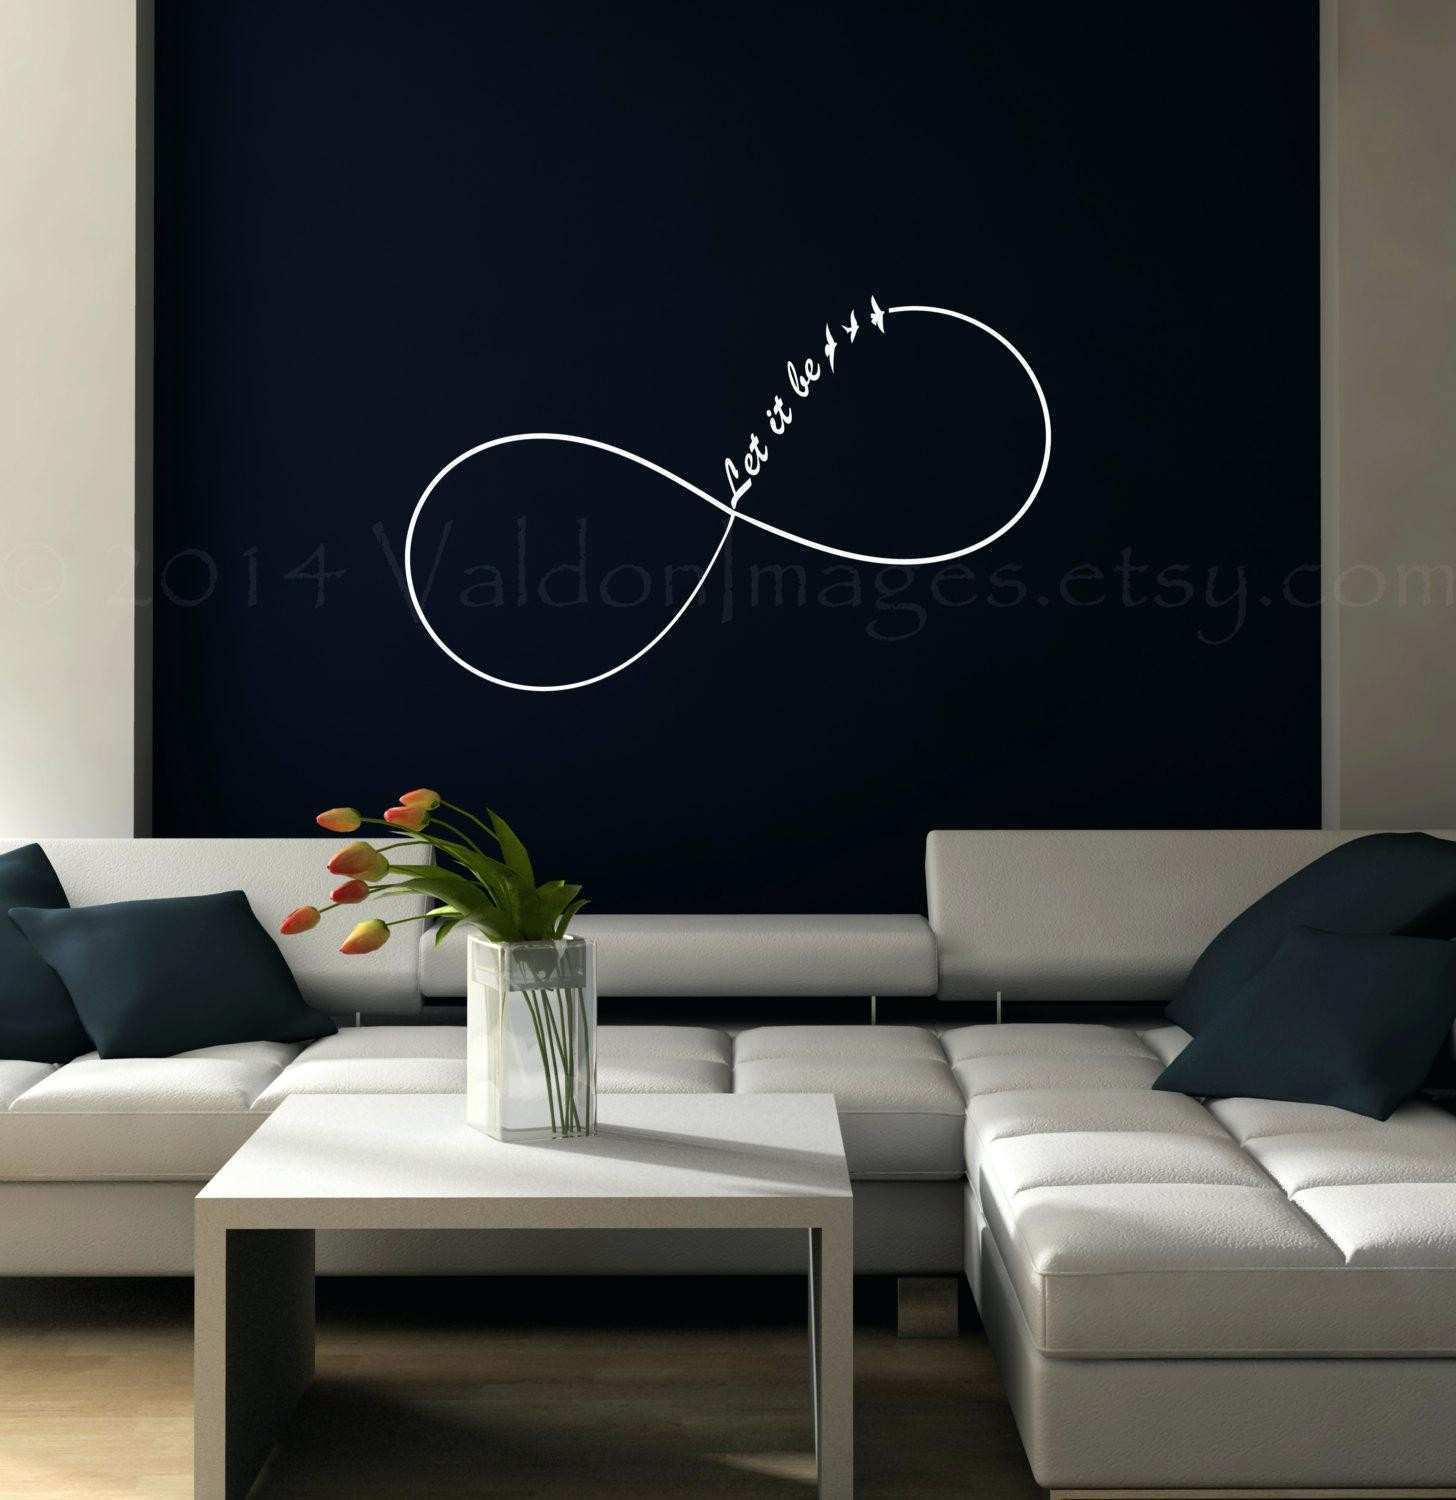 Create Your Own Wall Decal Unique How to Make Removable Wall Decals Black Removable Tree Branches